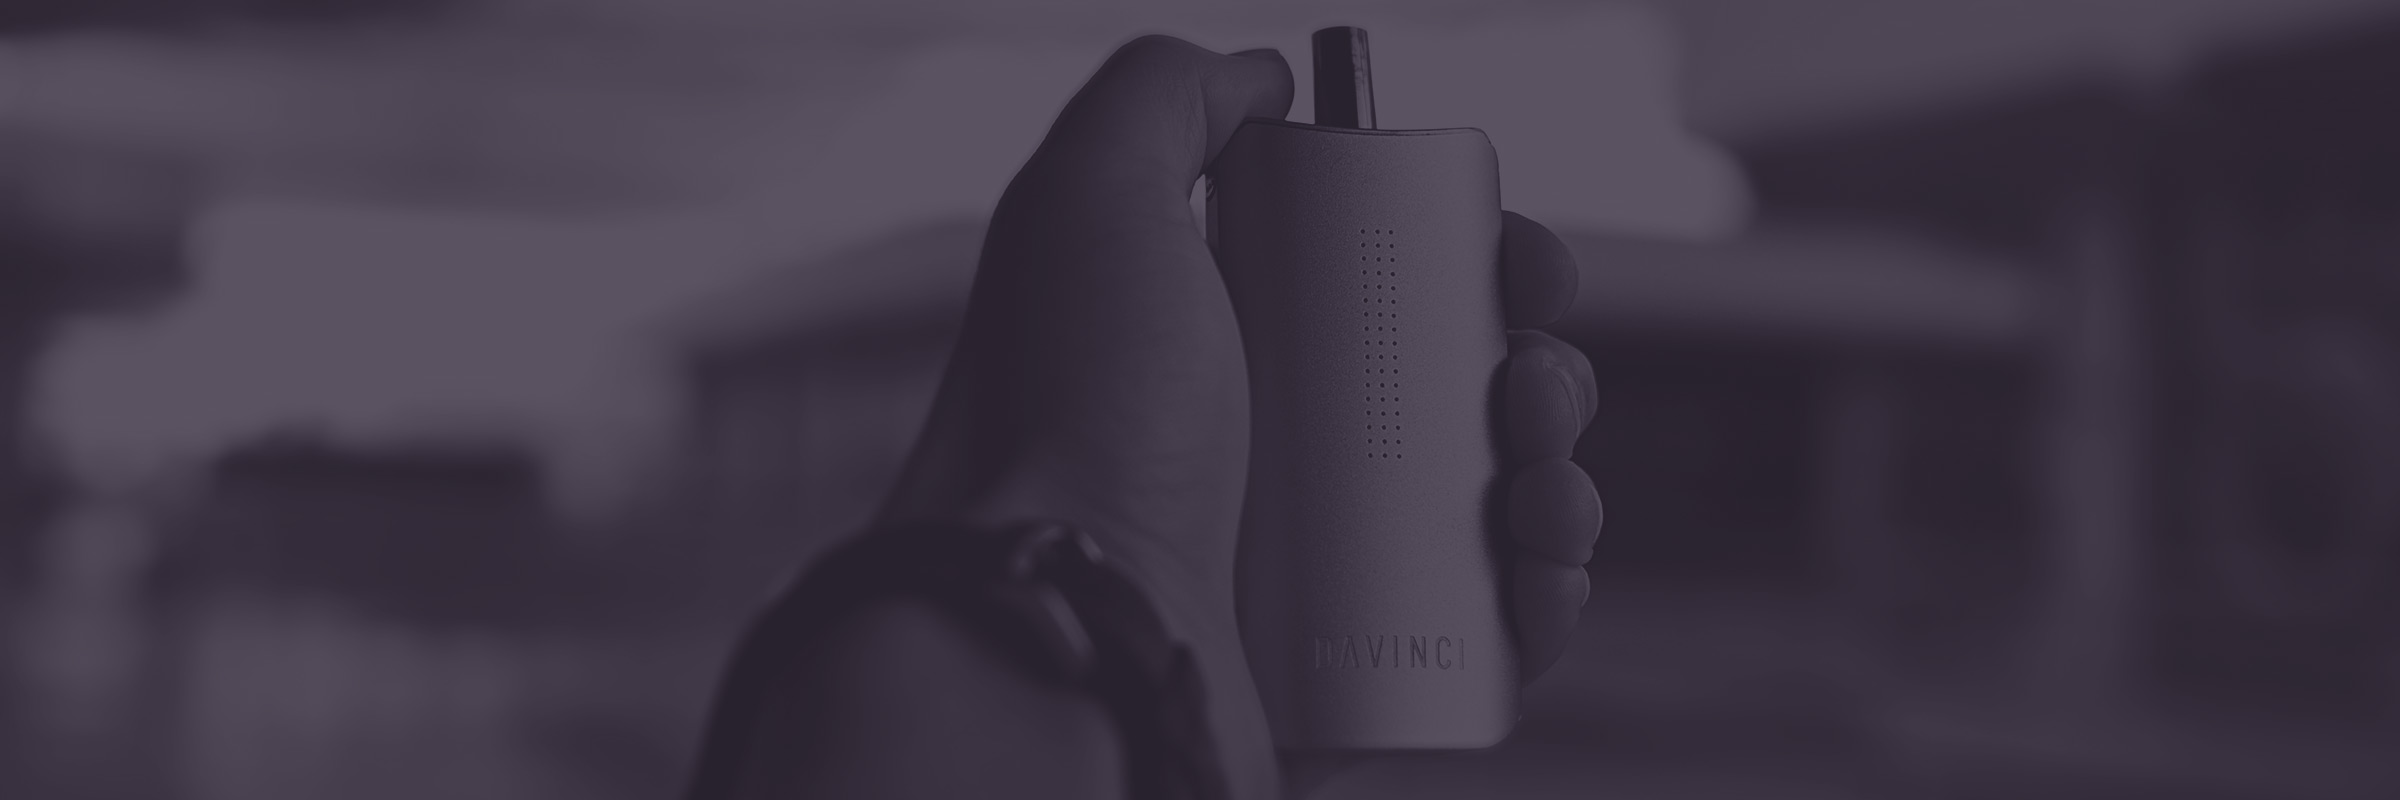 DaVinci IQ Advanced Vaporizer Review